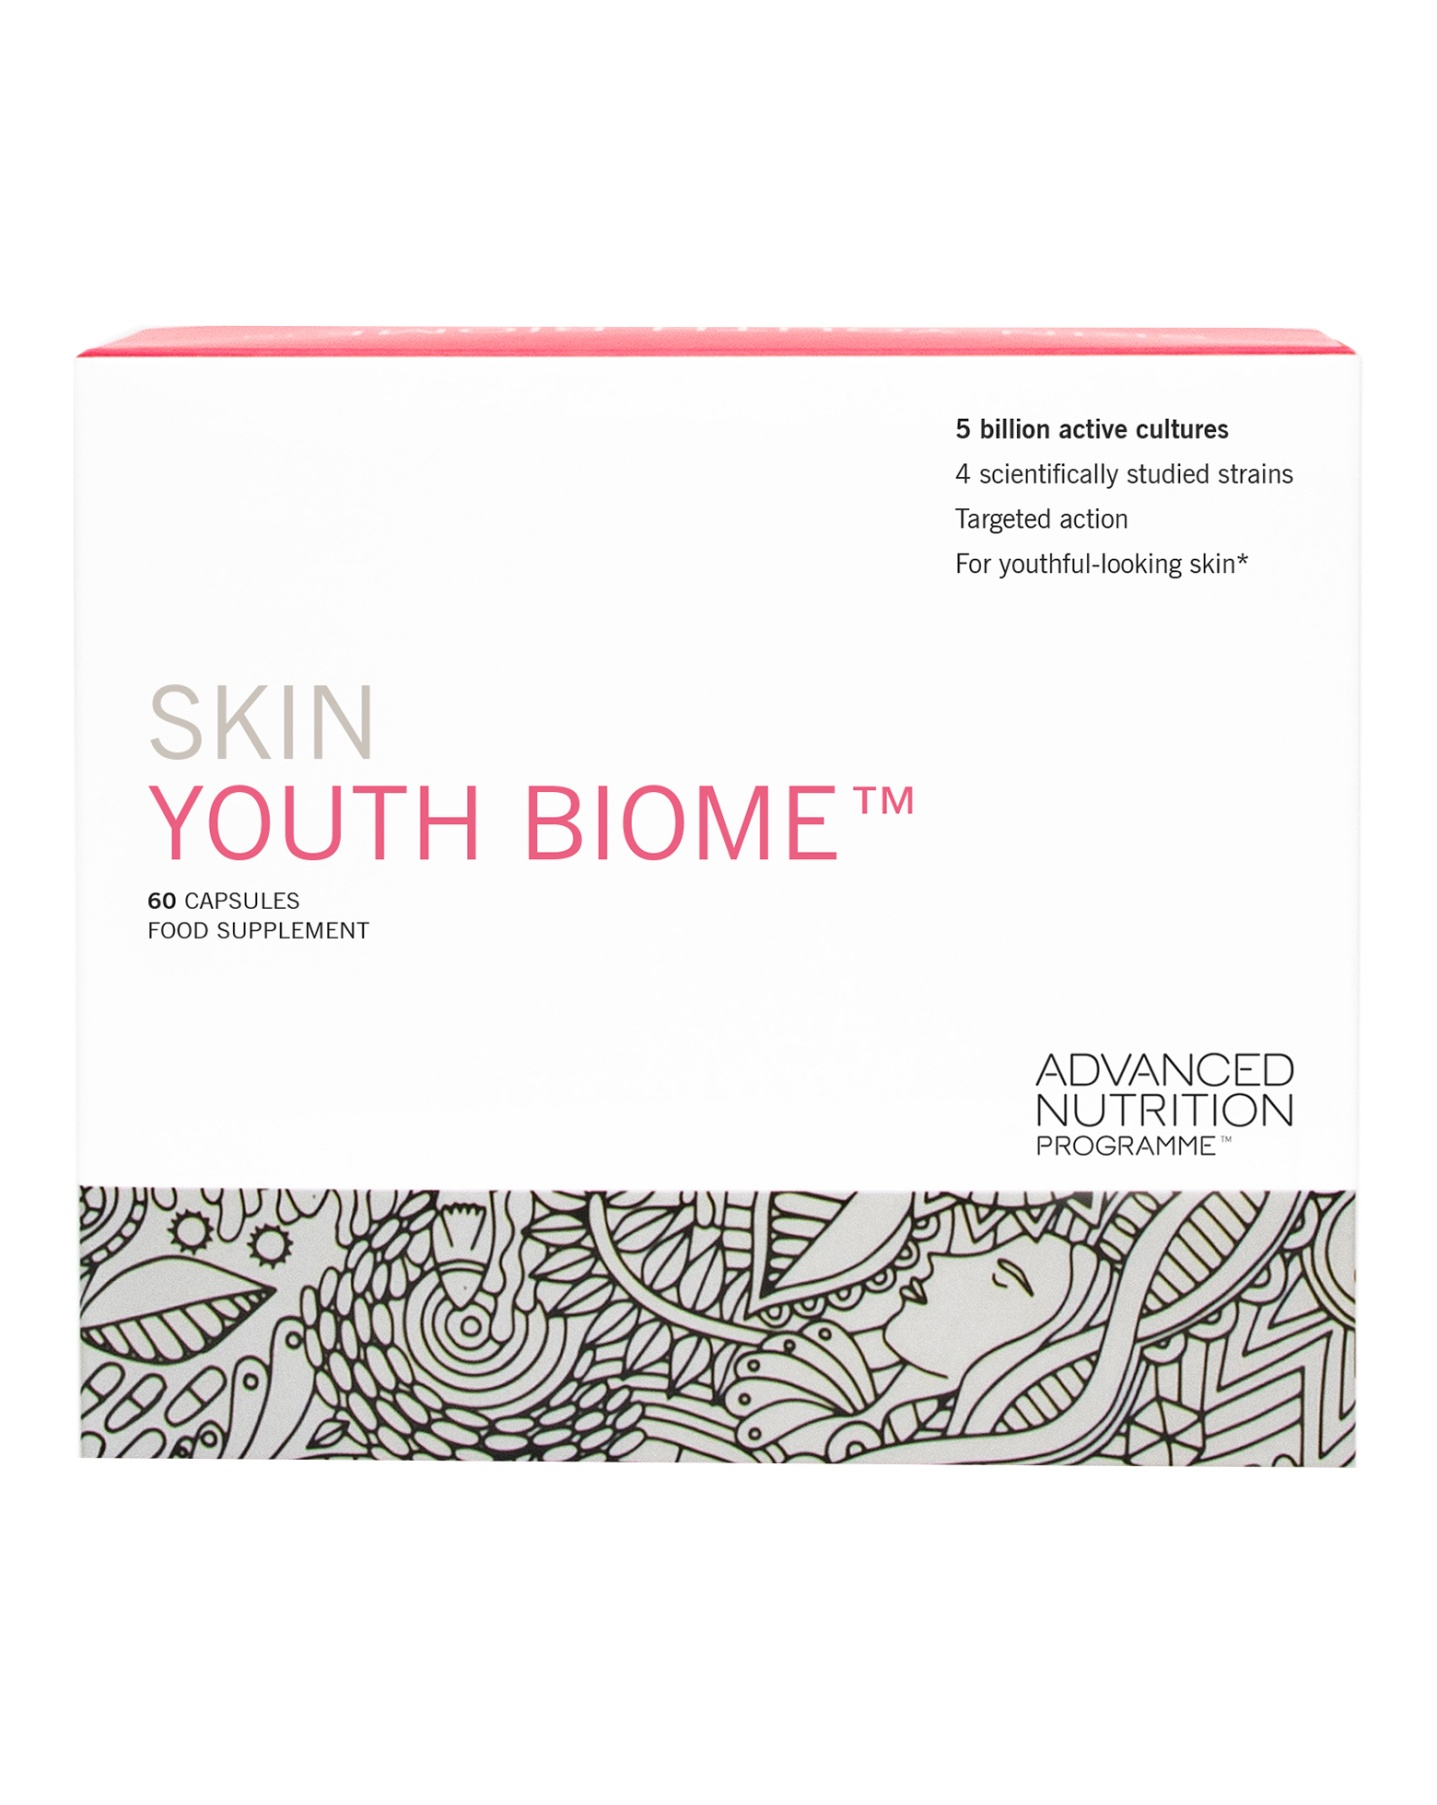 SKIN YOUTH BIOME